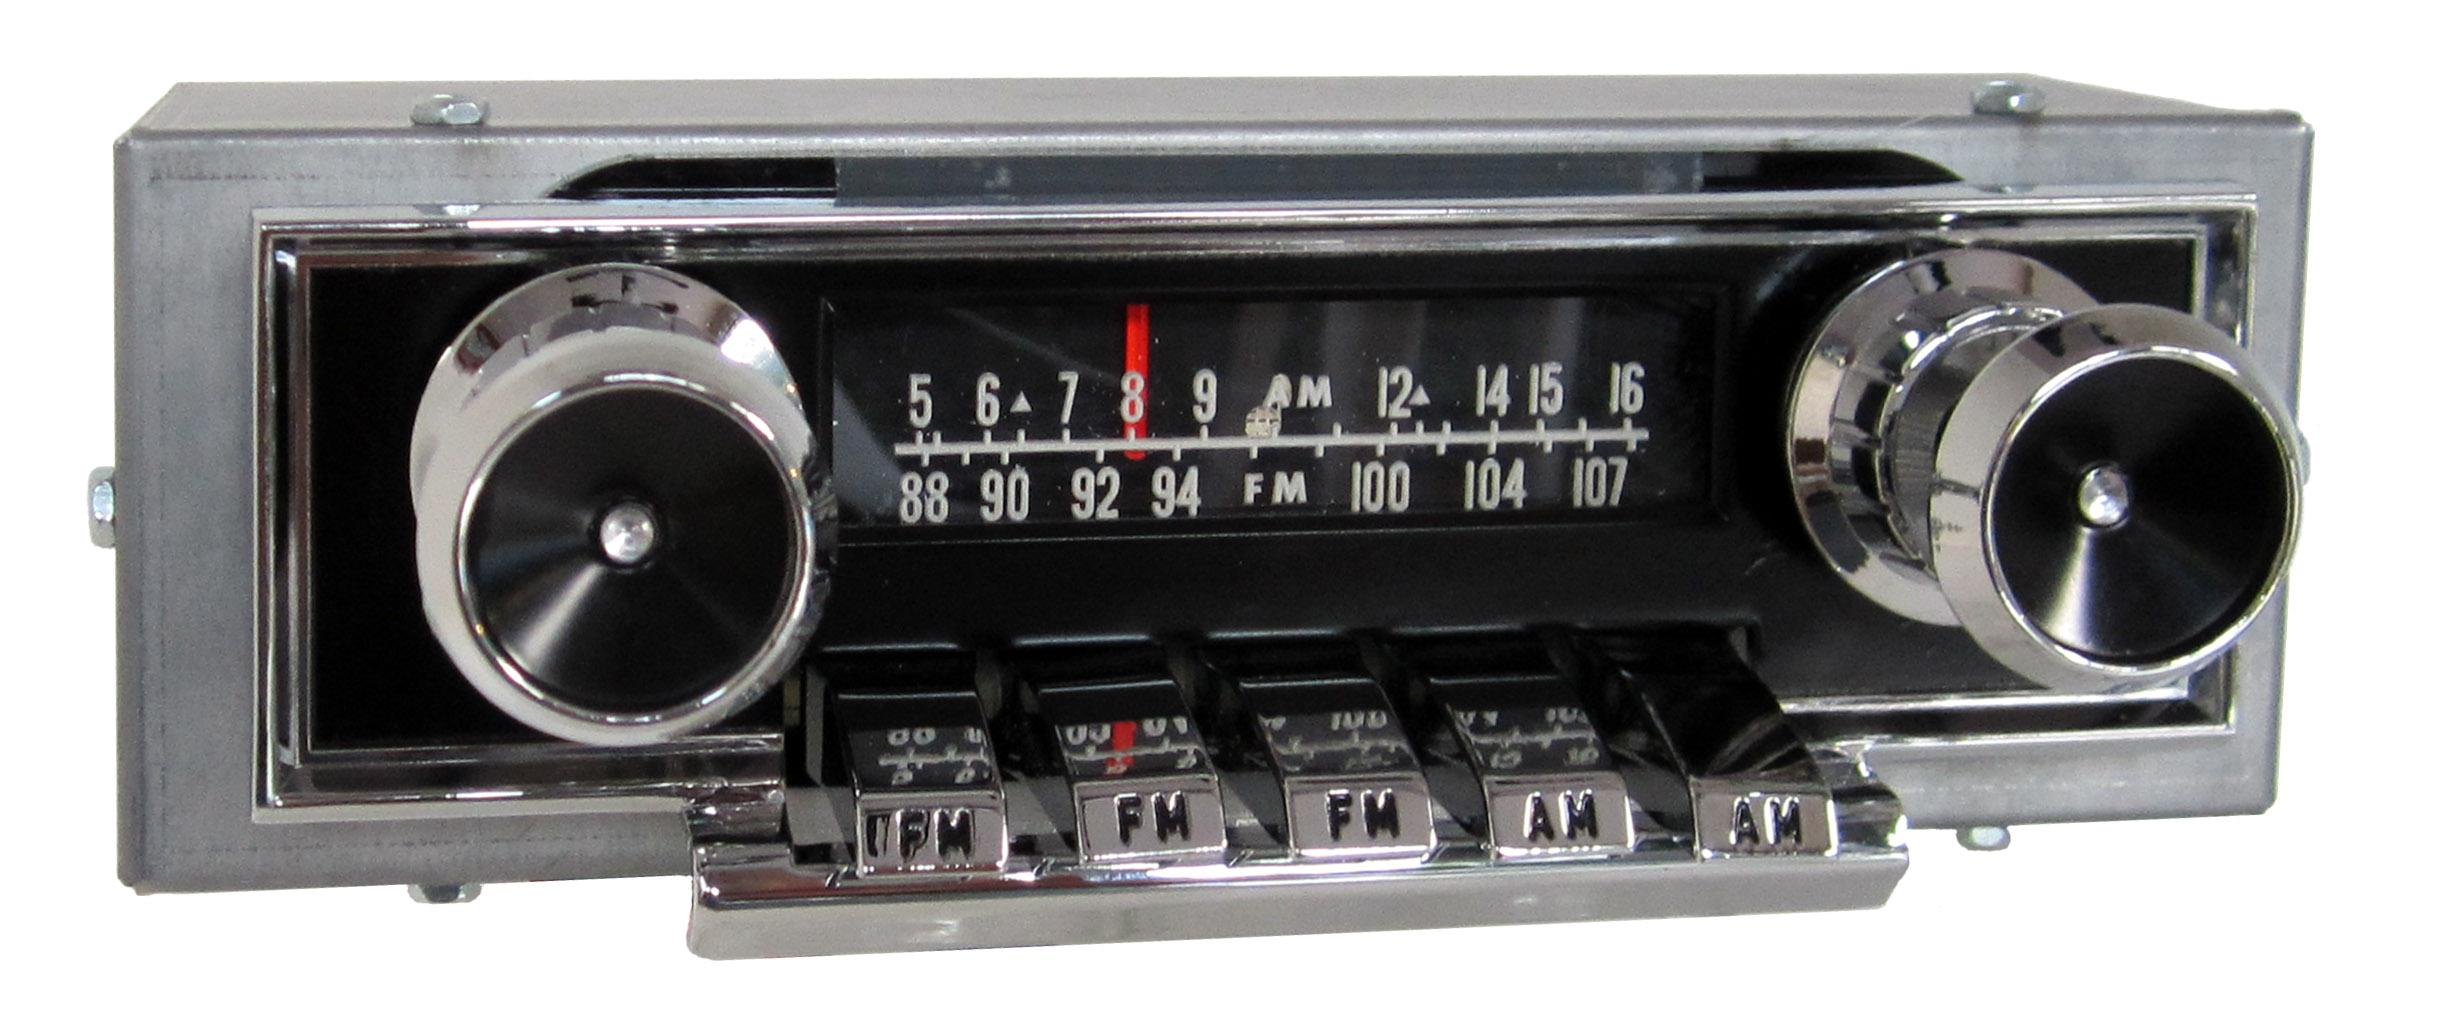 1963 FORD GALAXIE AM-FM STEREO RADIO  LOWER THAN EBAY